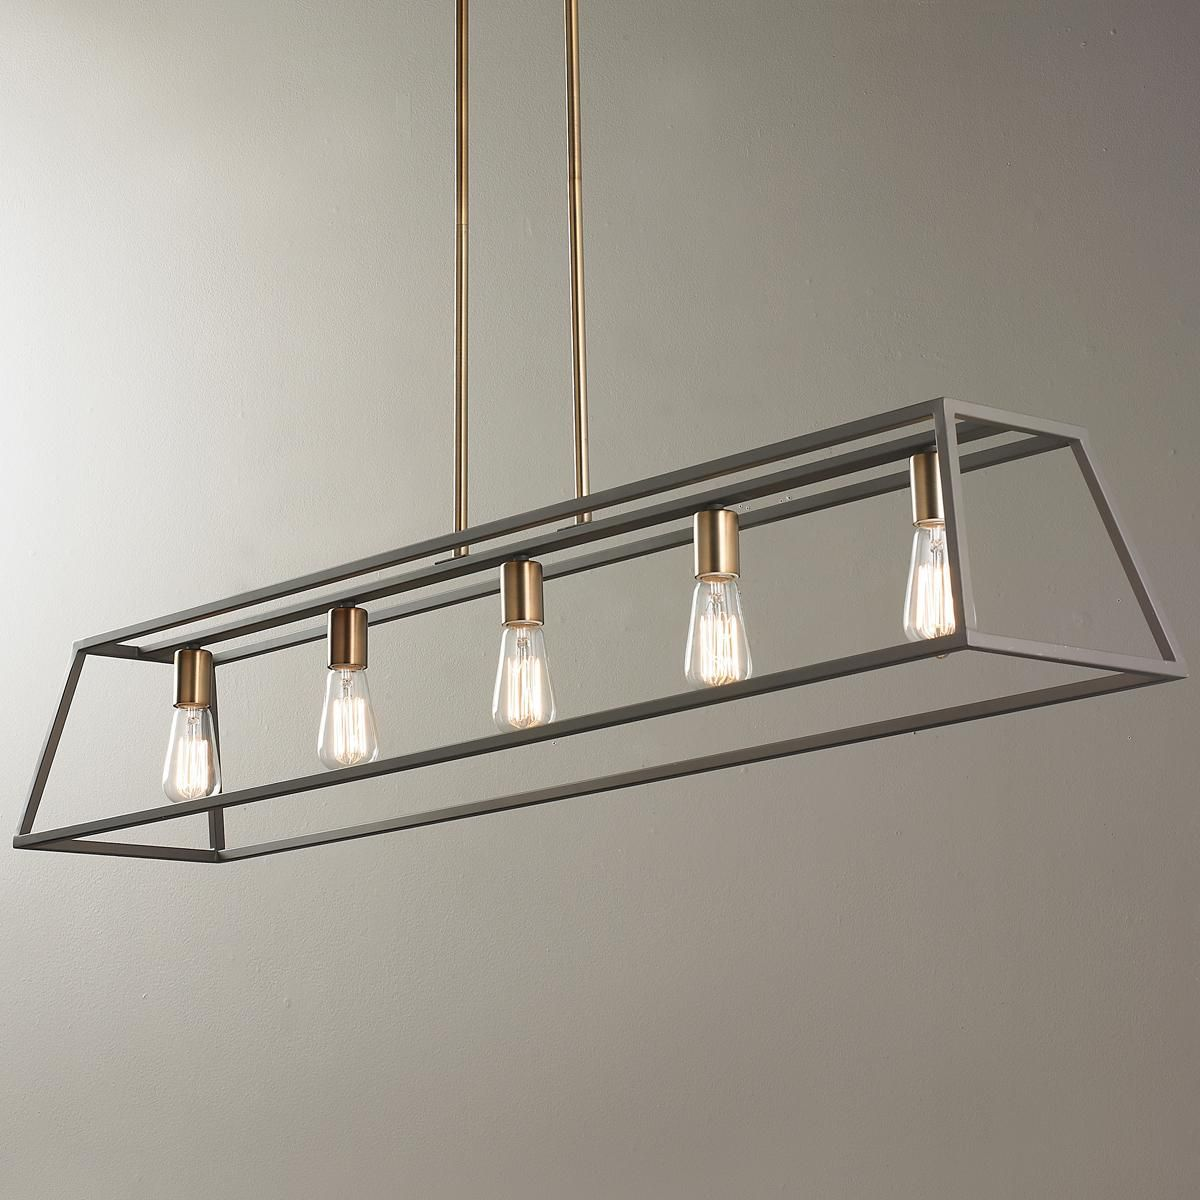 Modern Island Lighting Sleek Minimalist Island Chandelier 5 Light In 2019